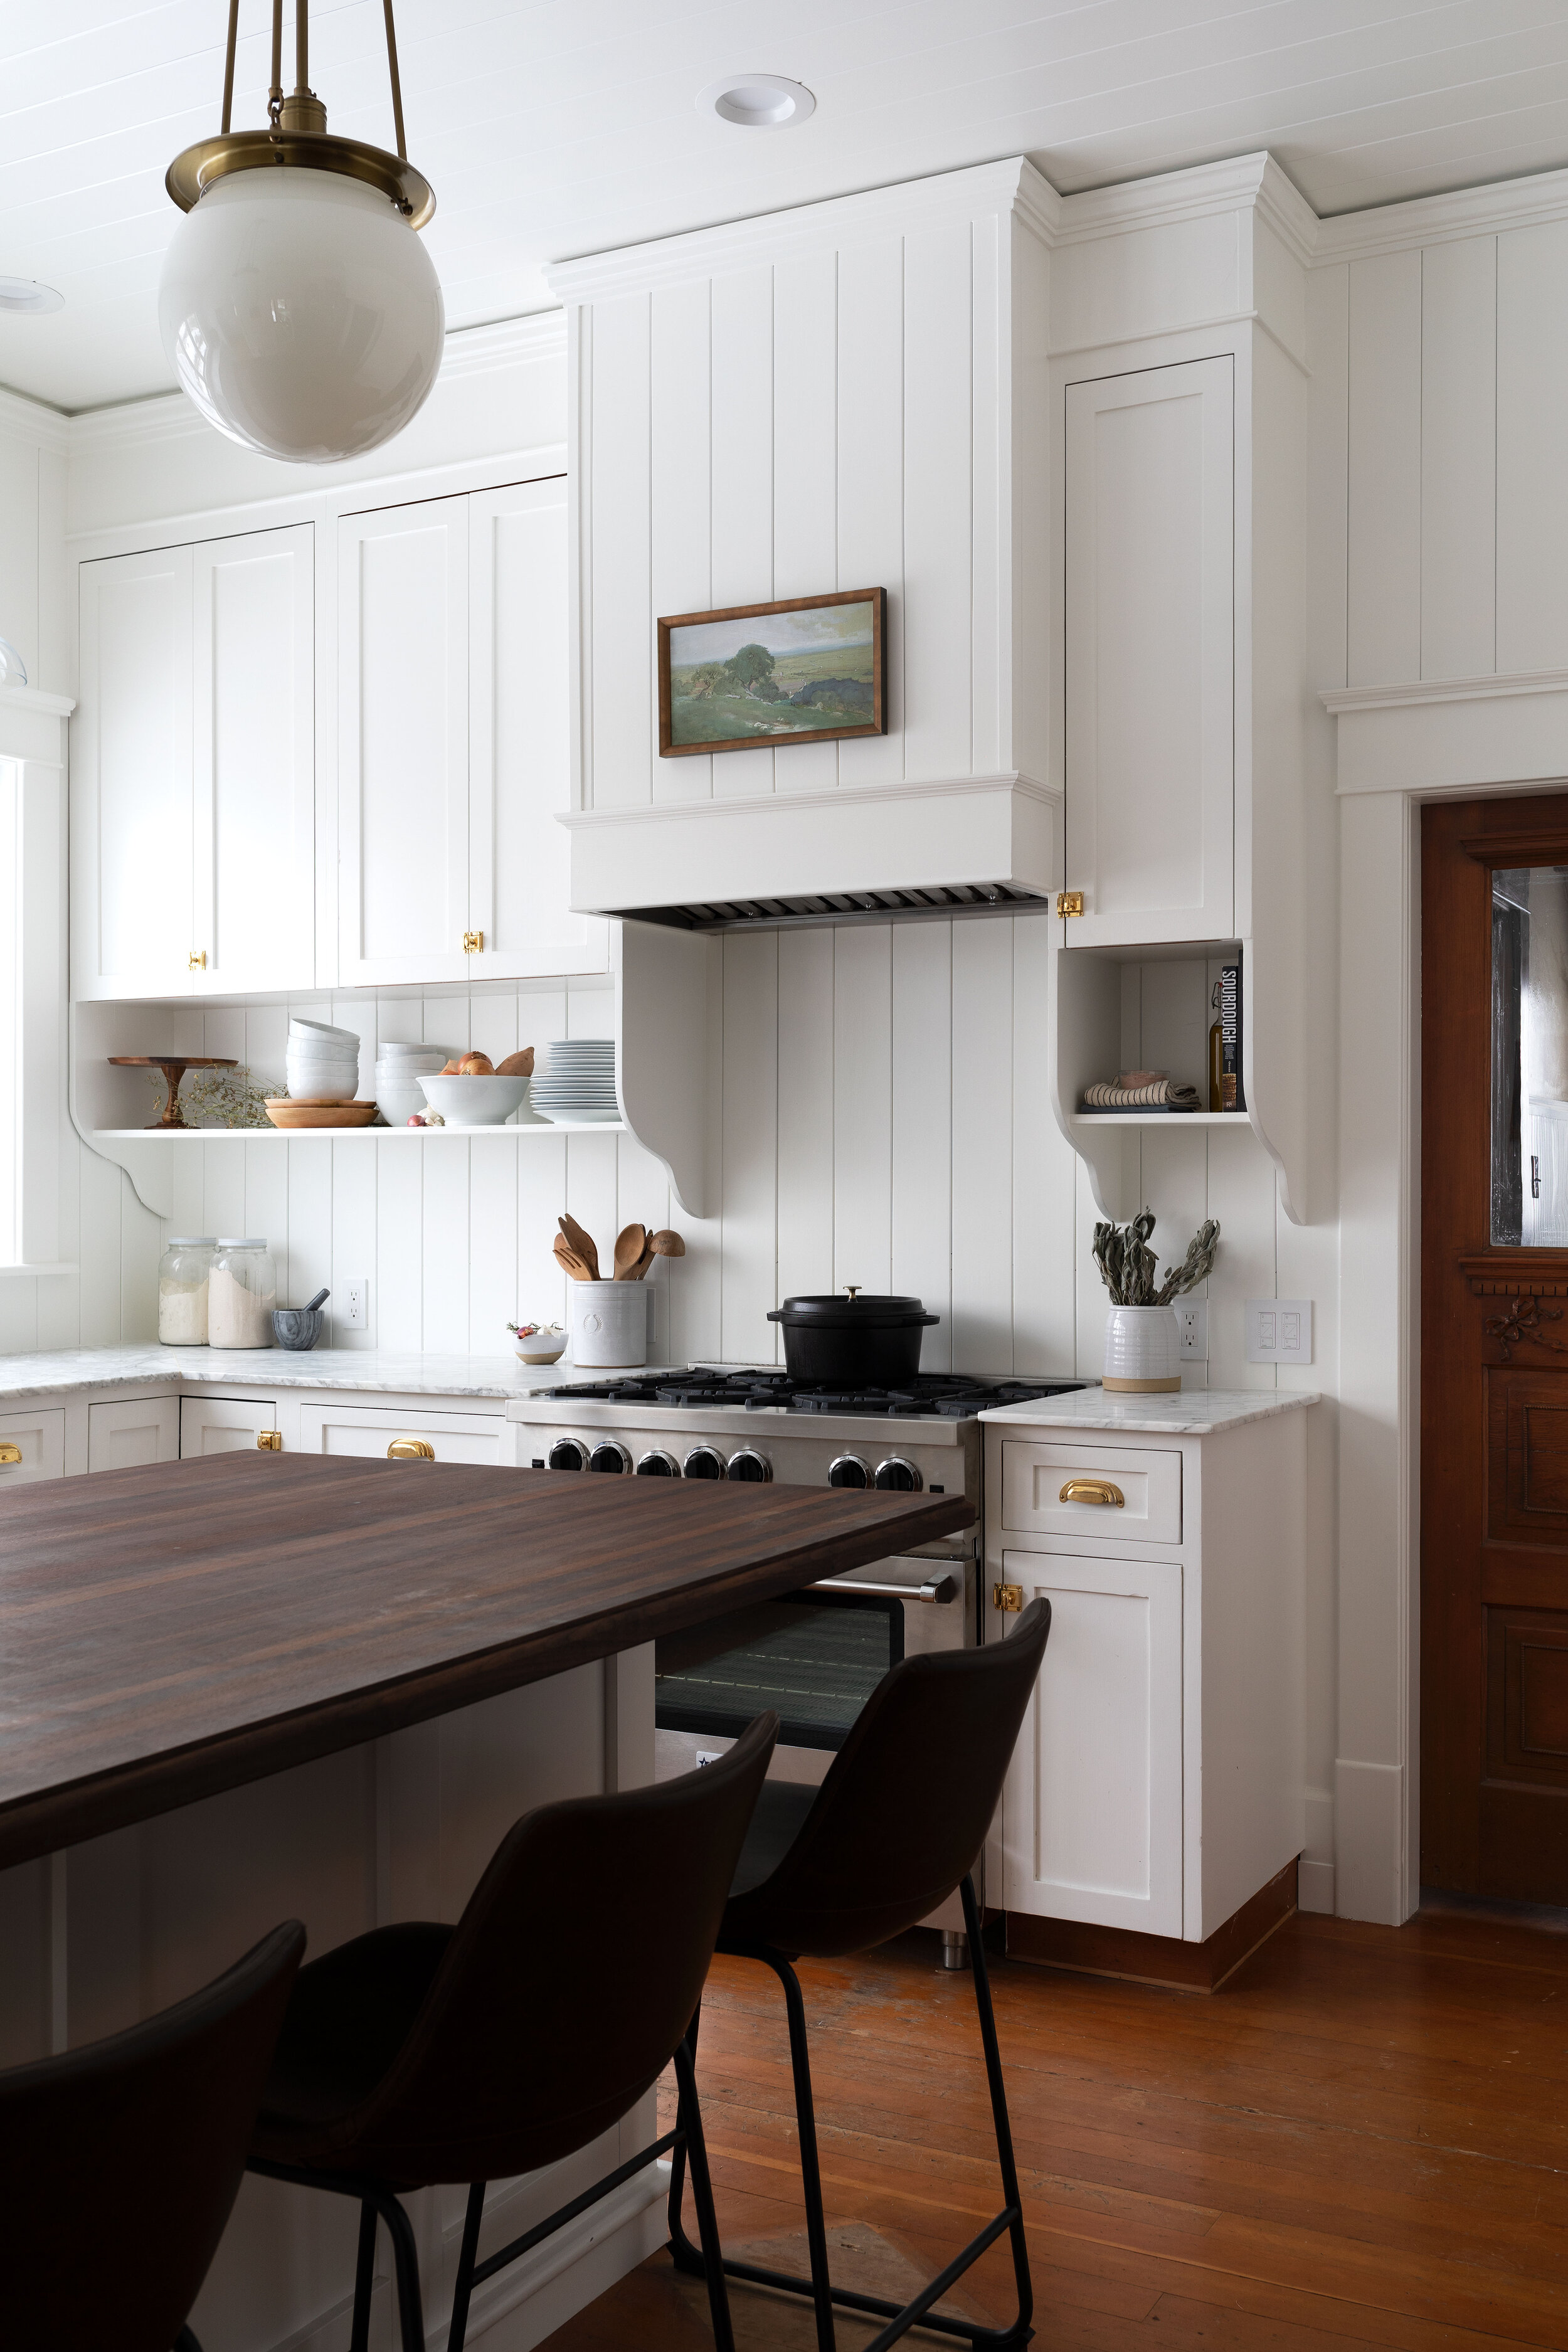 The Grit and Polish - Farmhouse Country Kitchen Reveal 3.0 3 web.jpg